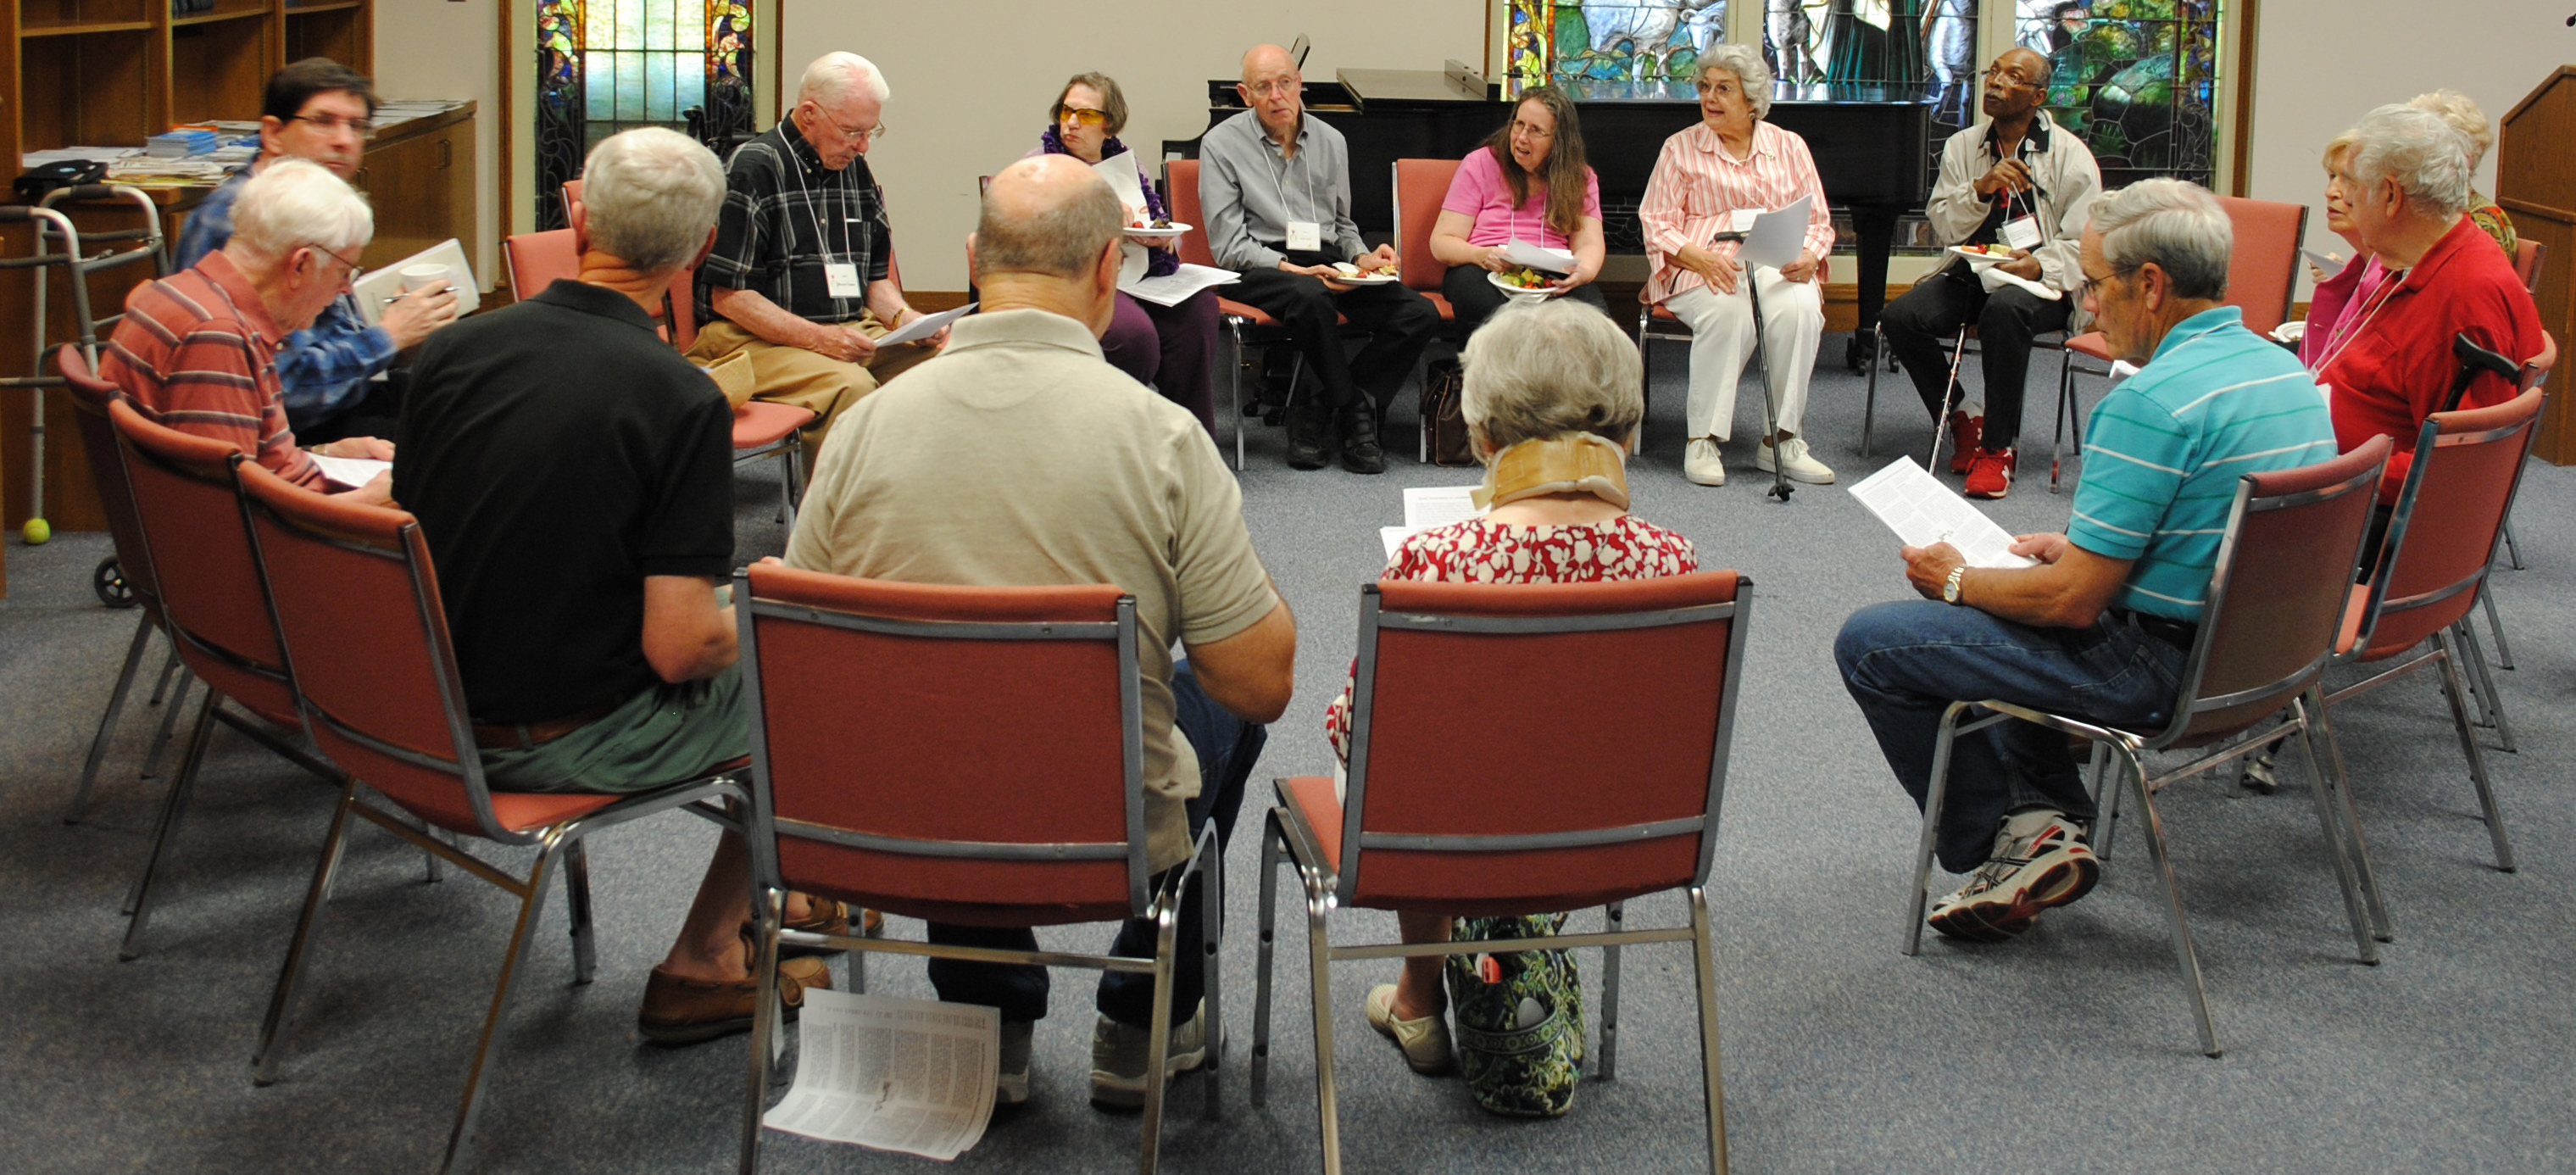 Parkinson's Support Group of Tarrant County will meet on Monday